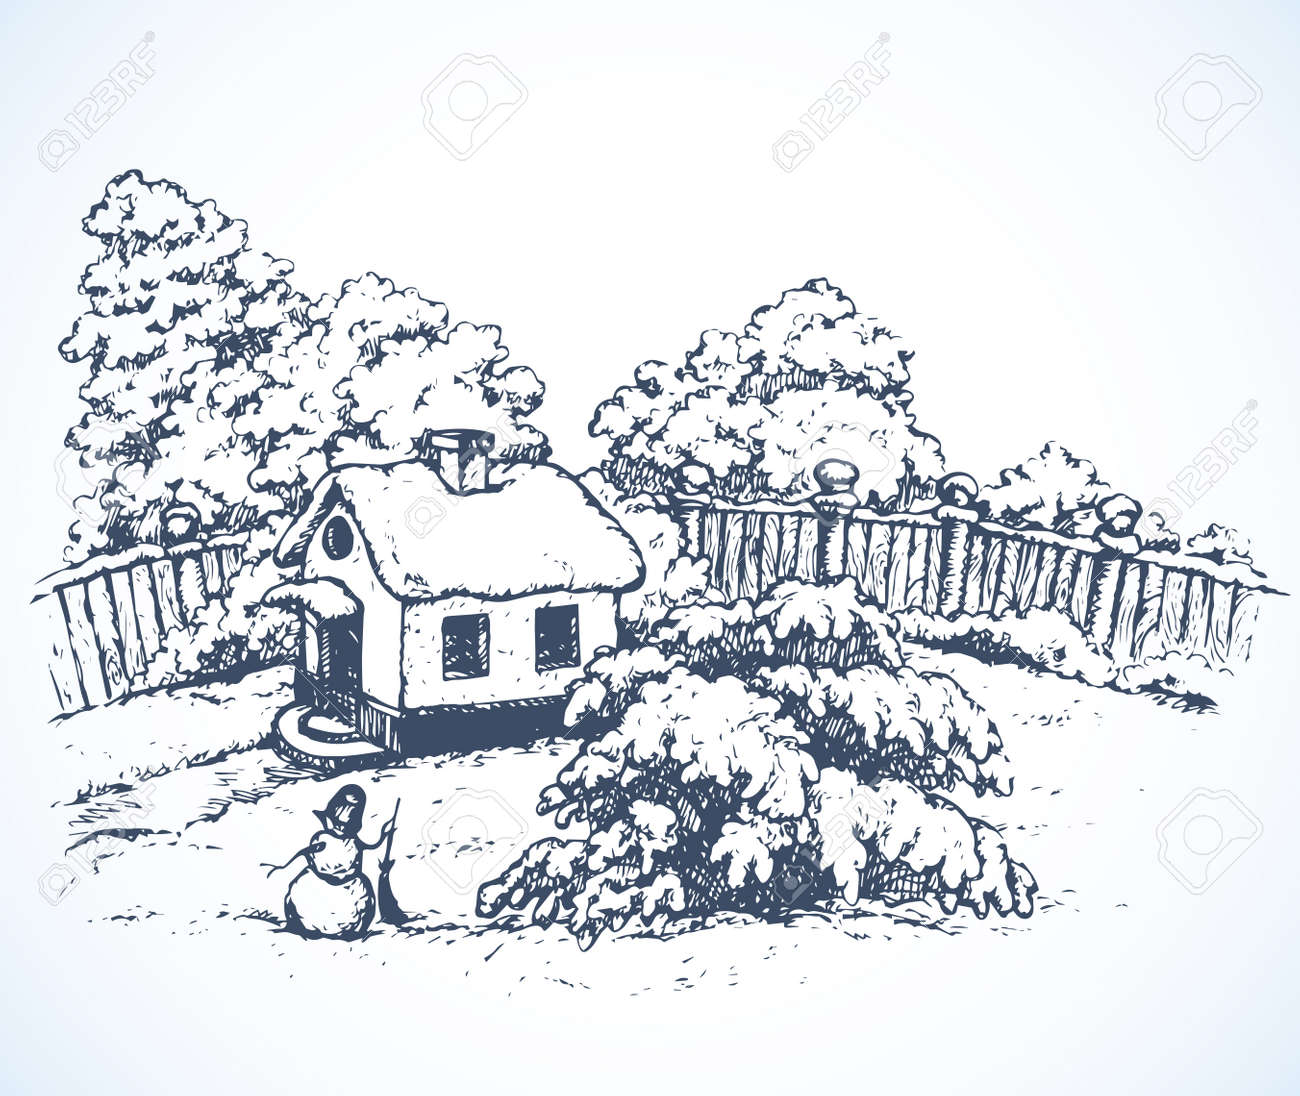 Cute cozy wooden chalet edifice isolated on light backdrop. Freehand outline black ink hand drawn picture sketchy in art retro doodle graphic style pen on paper. Scenic view with space for text on sky - 159758677